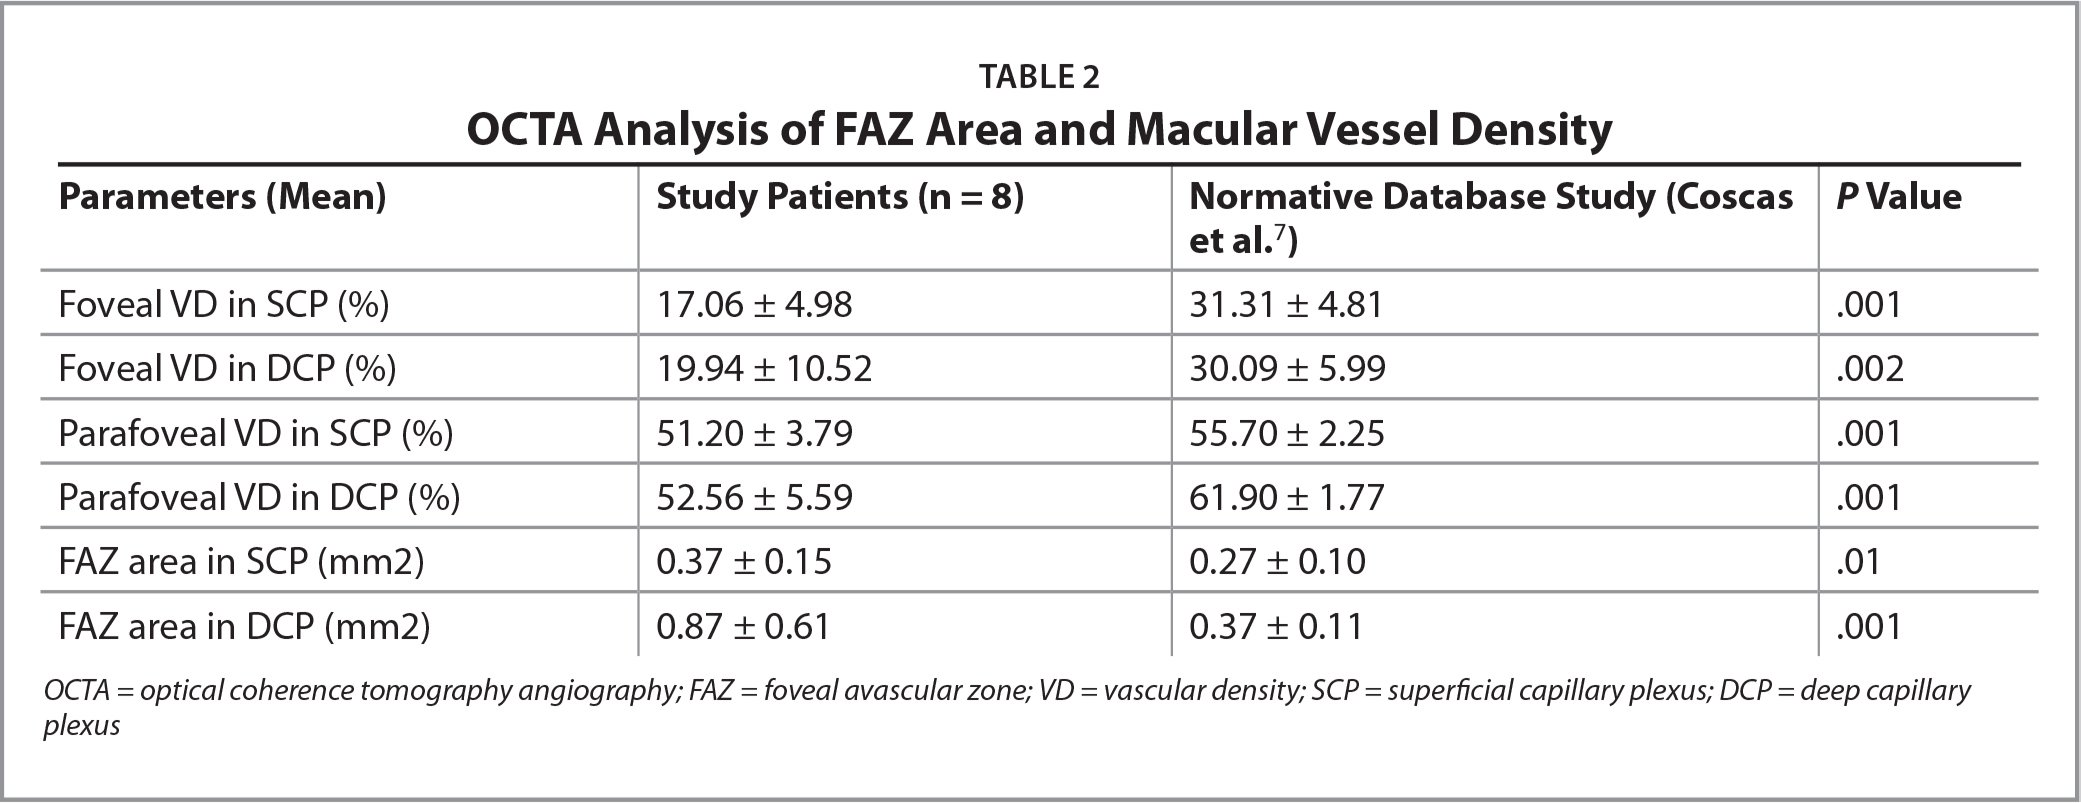 OCTA Analysis of FAZ Area and Macular Vessel Density